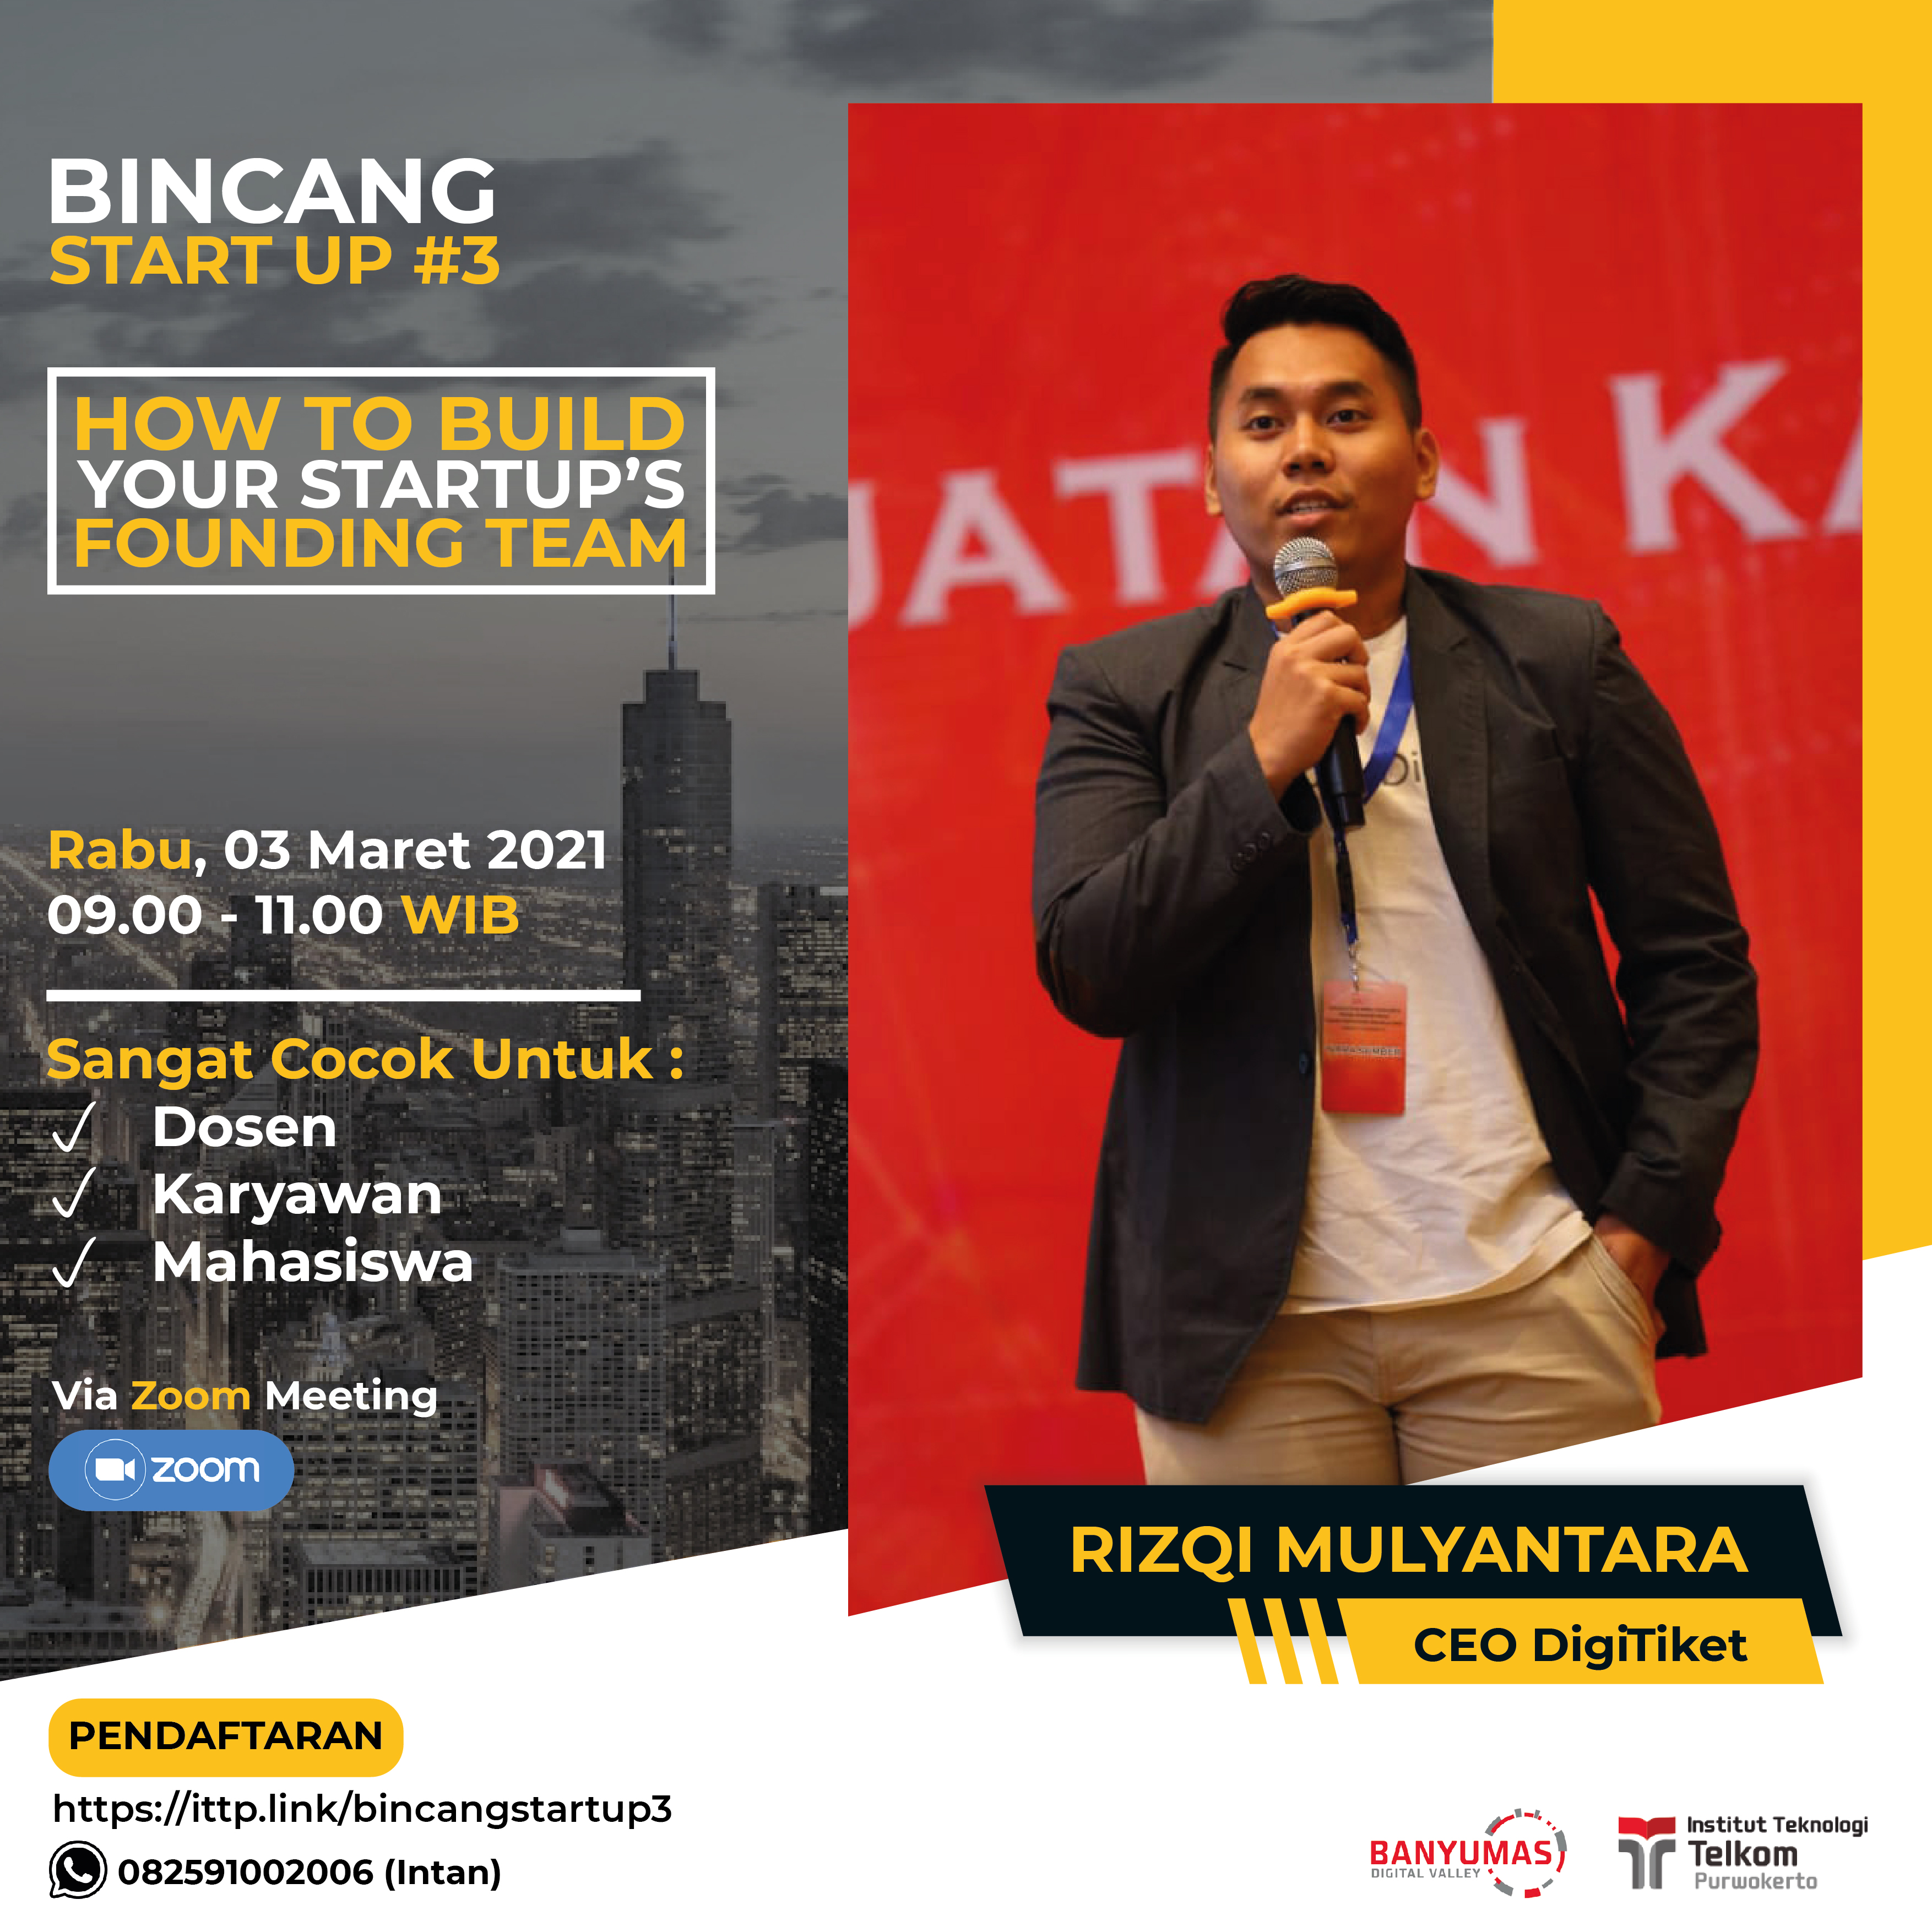 Bincang Start Up #3: How To Build Your Startup's Founding Team